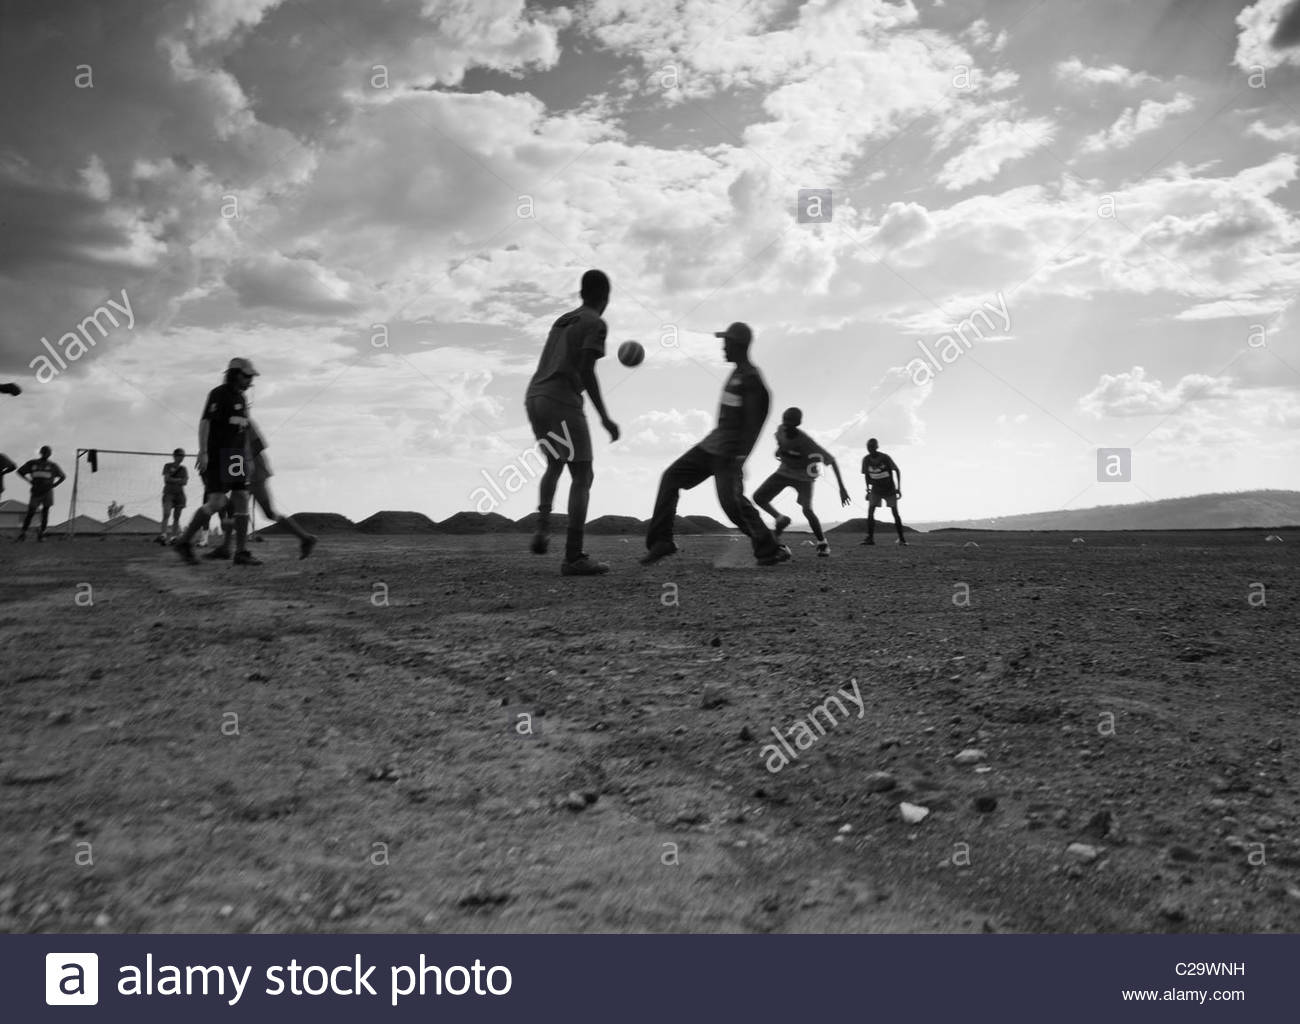 Boys play soccer at a village for survivors of the Rwandan genocide. - Stock Image